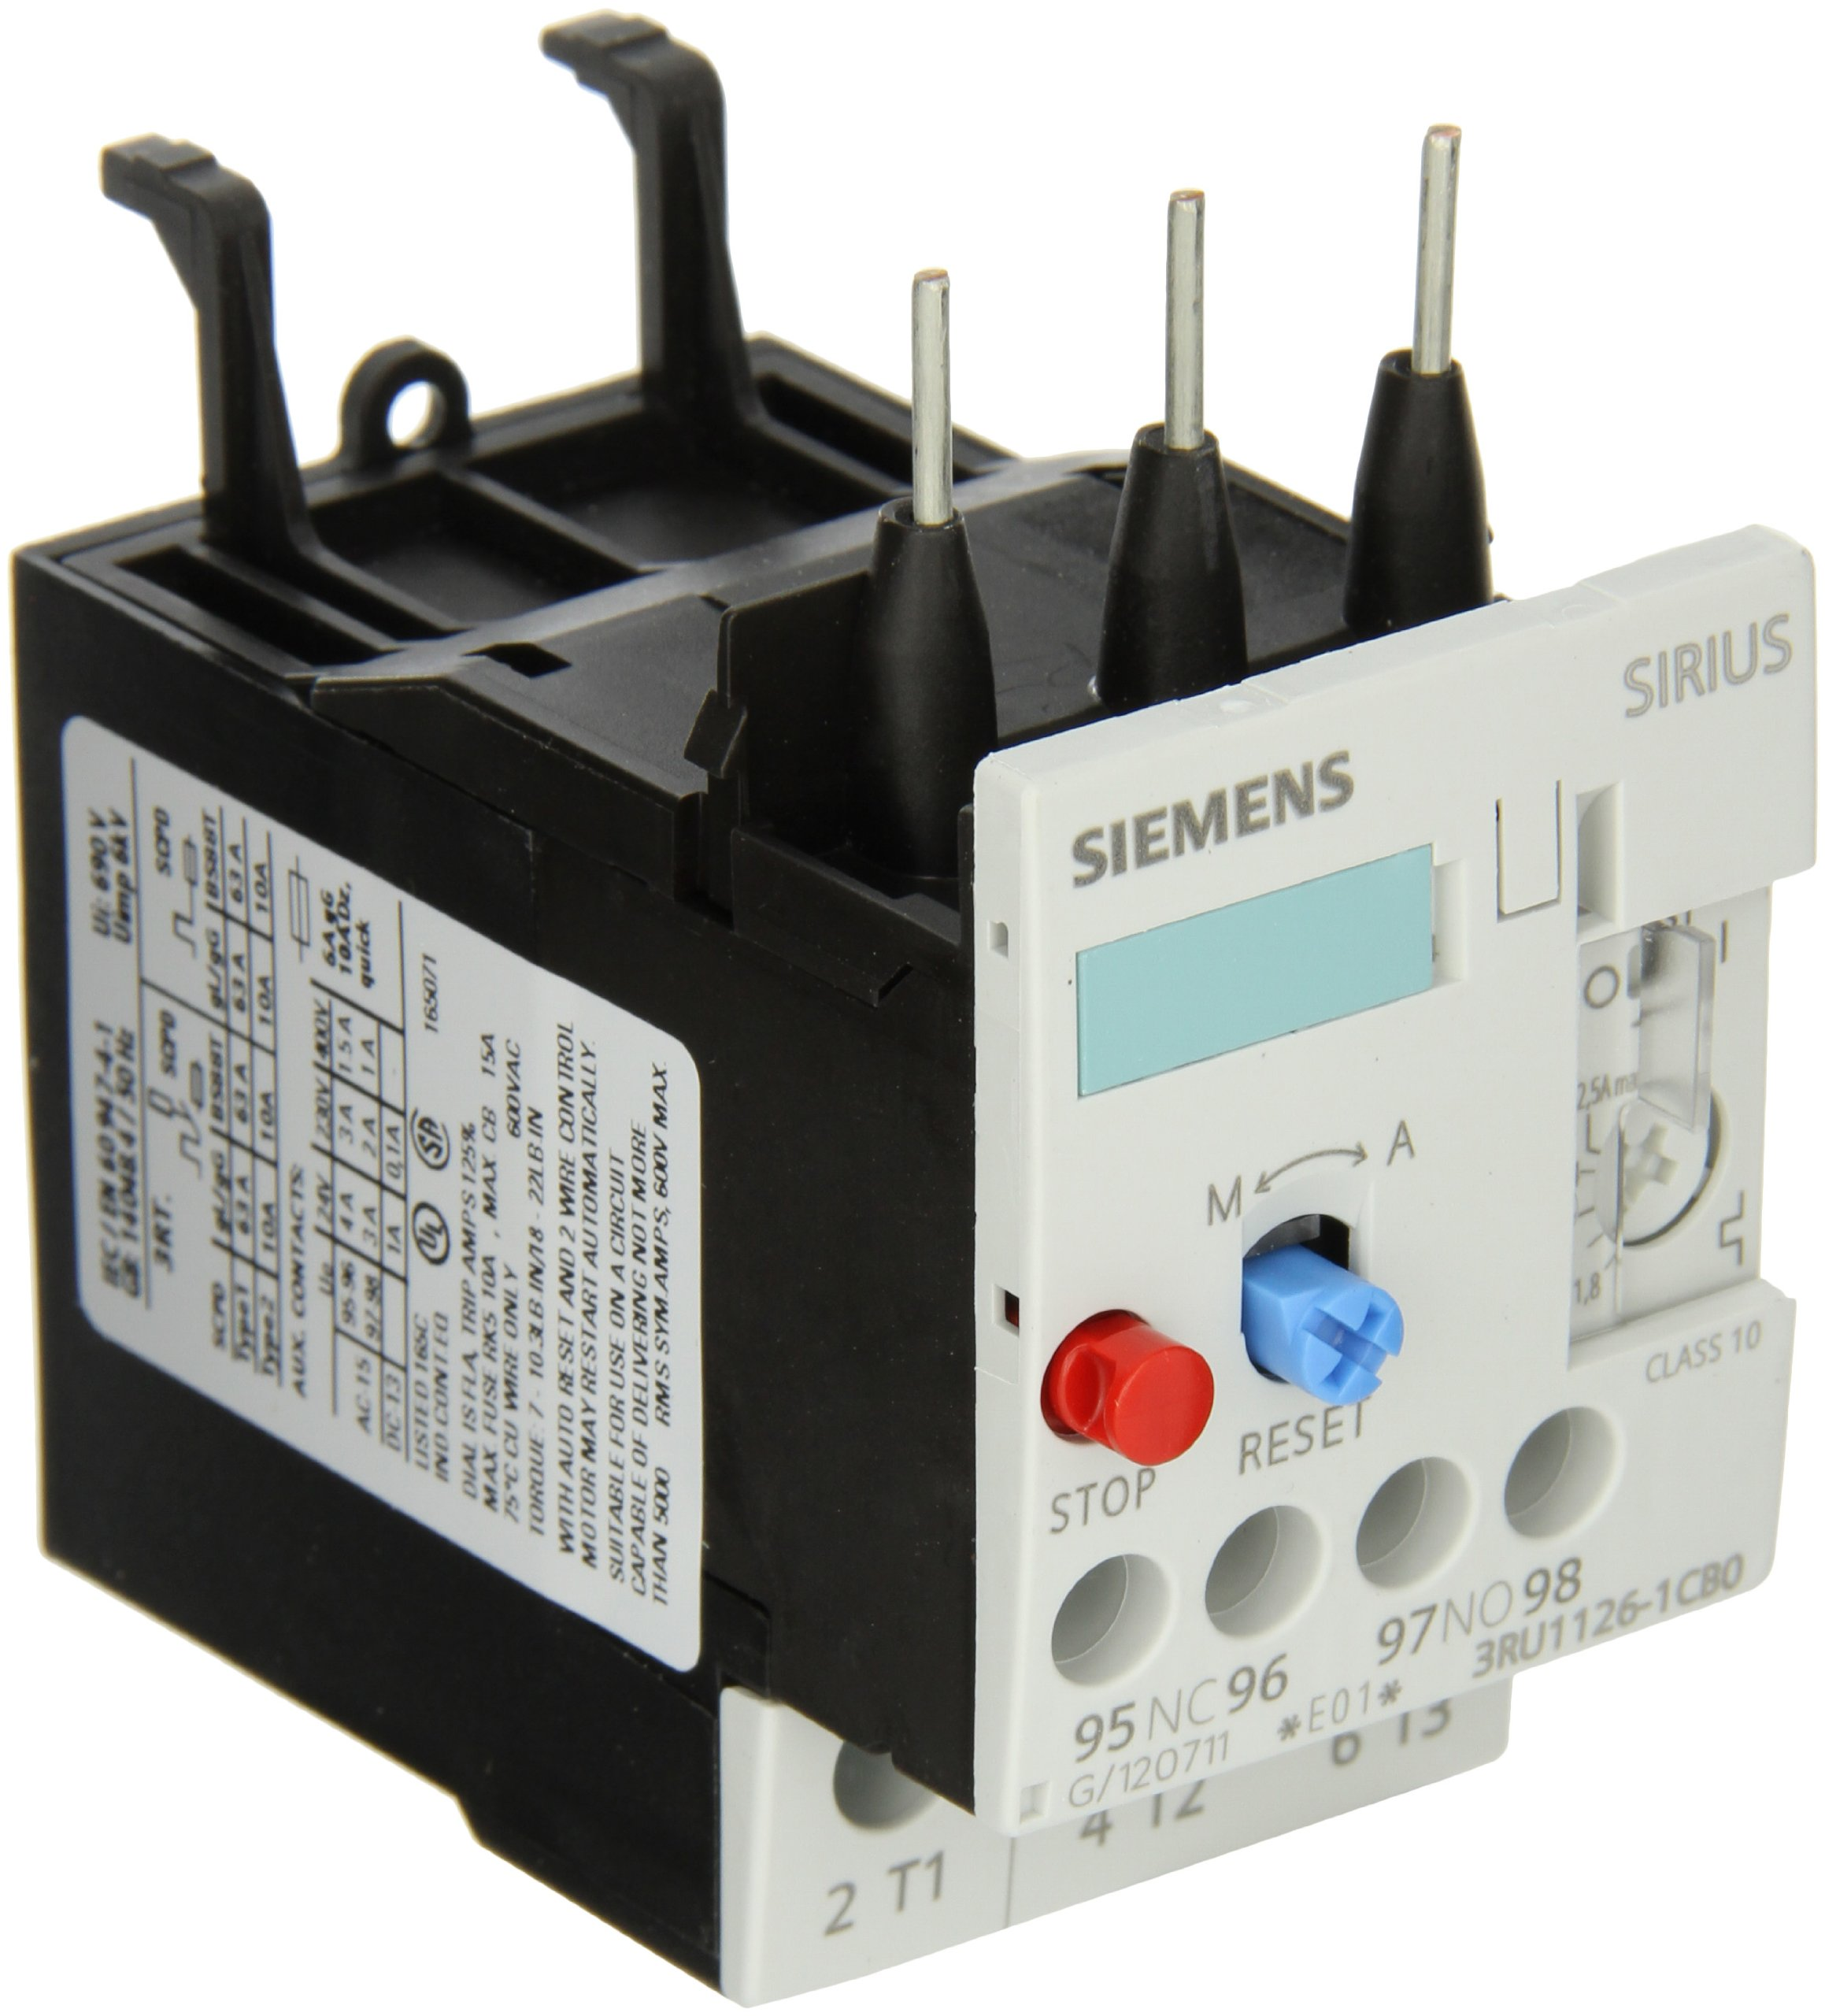 Siemens 3RU11 26-1CB0 Thermal Overload Relay, For Mounting Onto Contactor, Size S0, 1.8-2.5A Setting Range